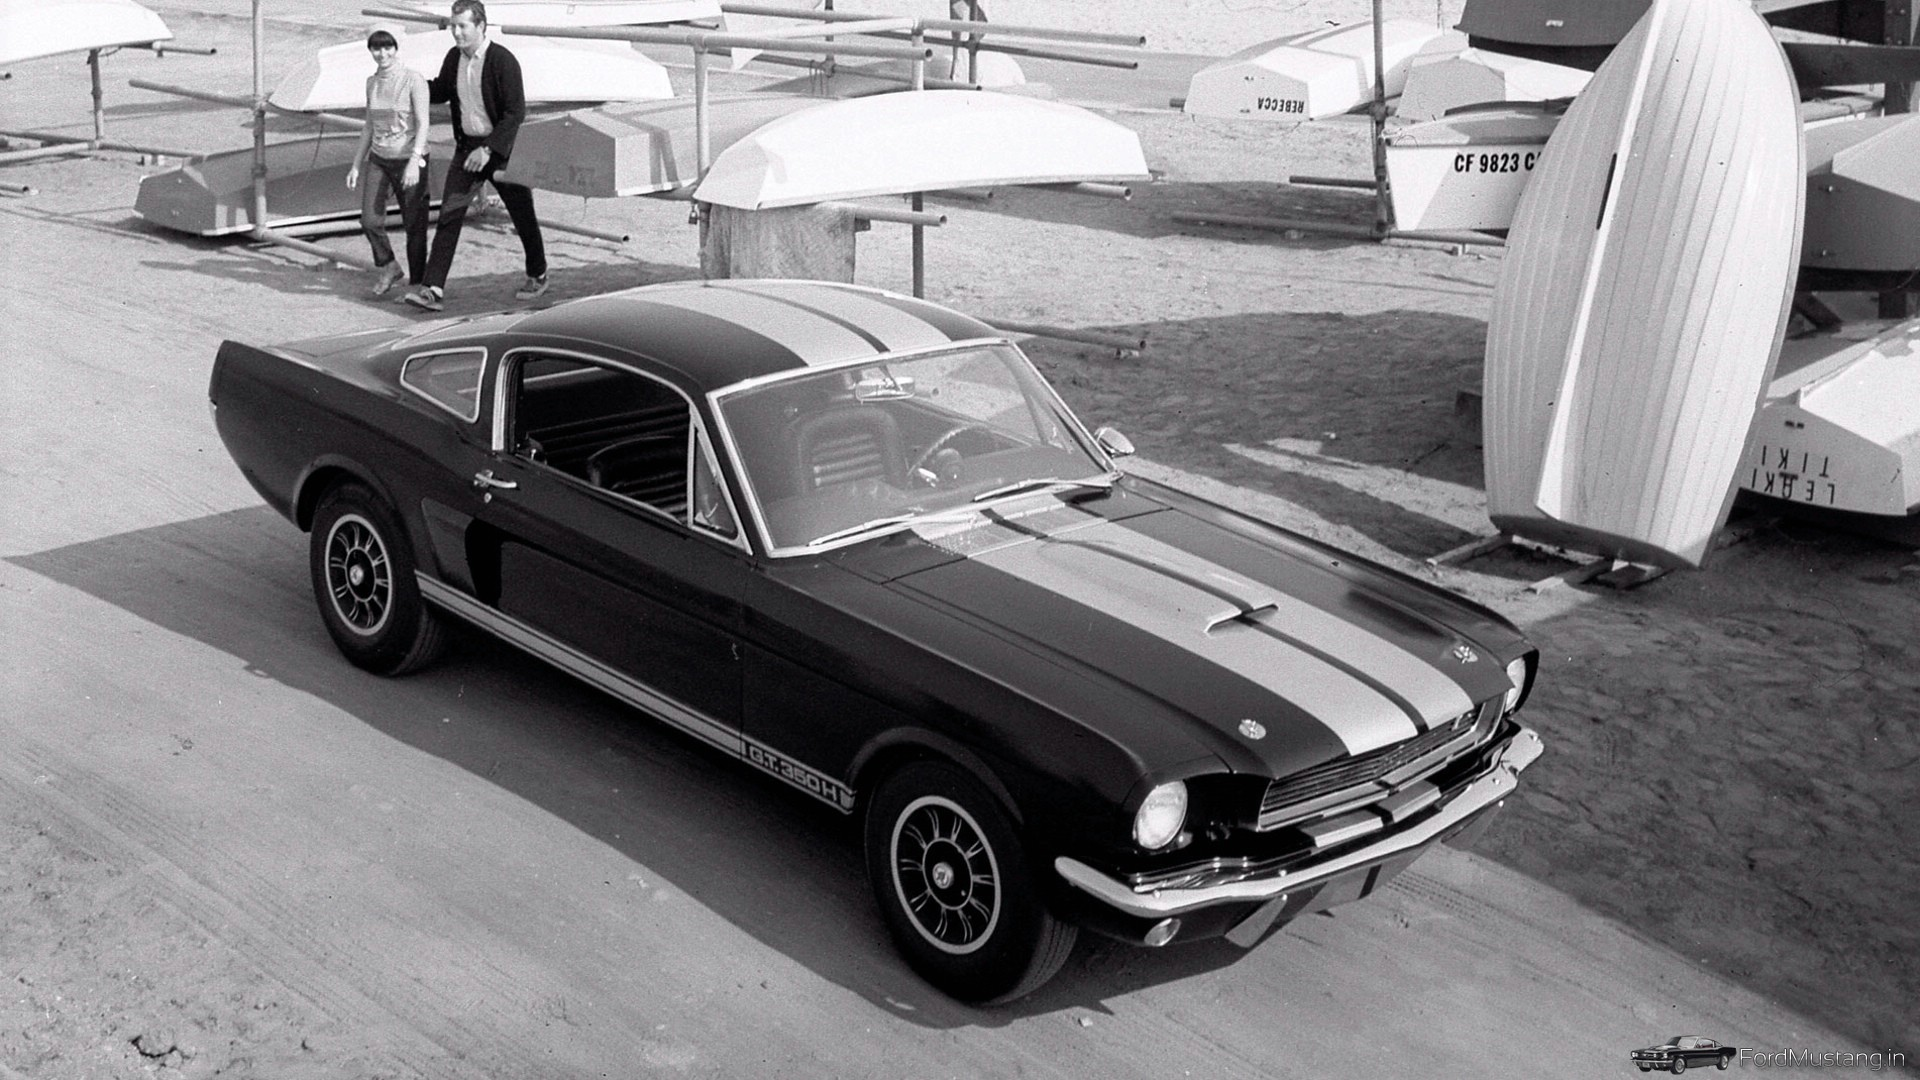 Ford mustang ford mustang bullitt ford mustang shelby gt - Muscle cars wallpaper hd pack ...